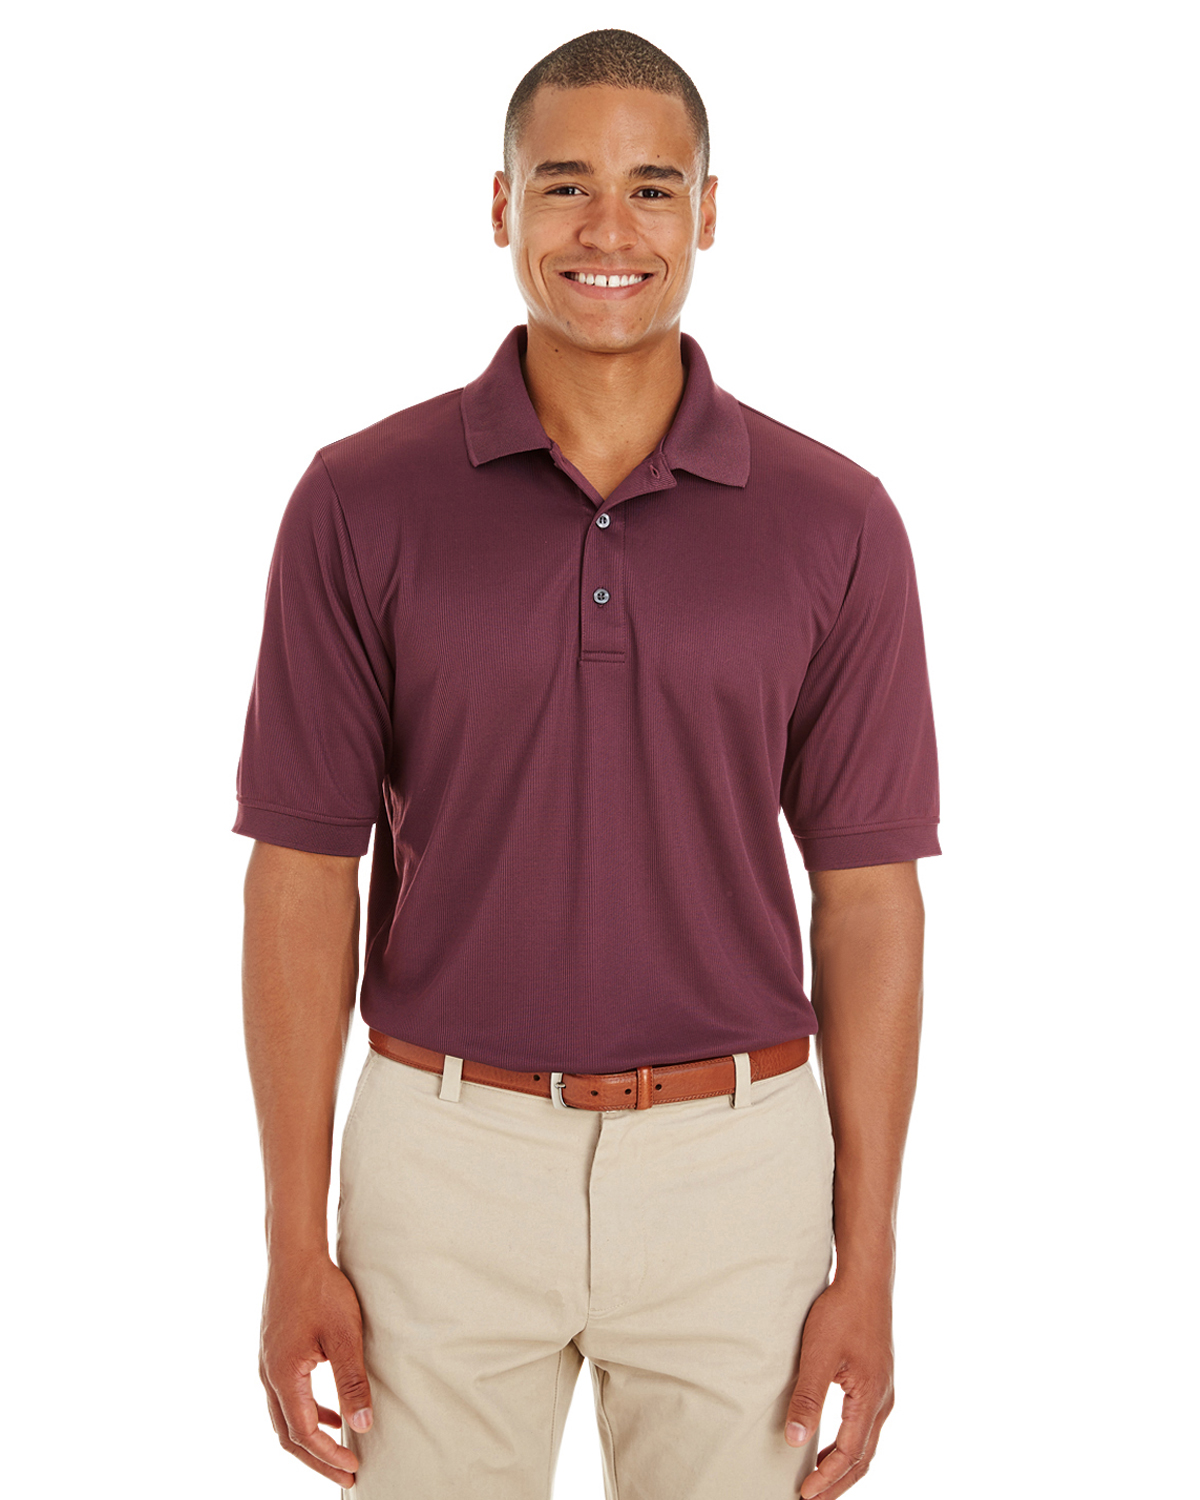 Men's Textured Athletic Mesh Polo Shirt